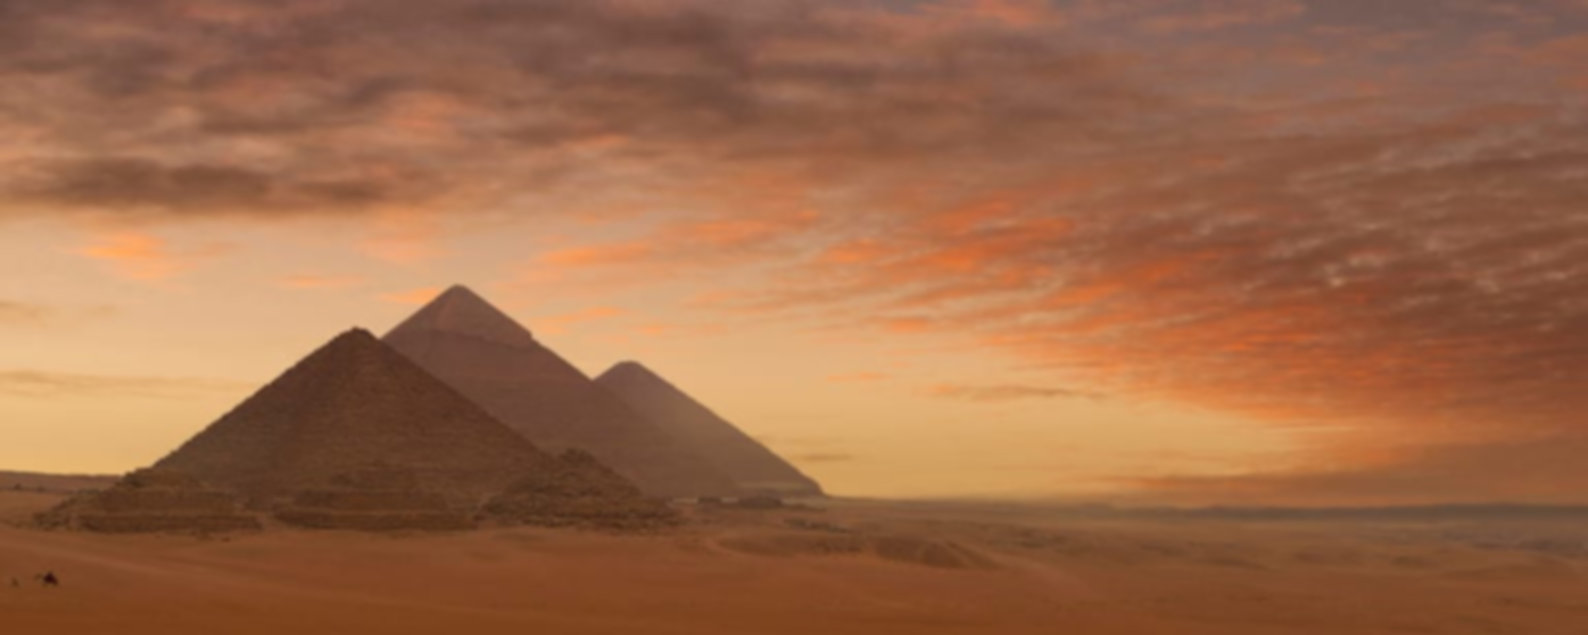 ancient-egypt-pyramids-feature-604509996